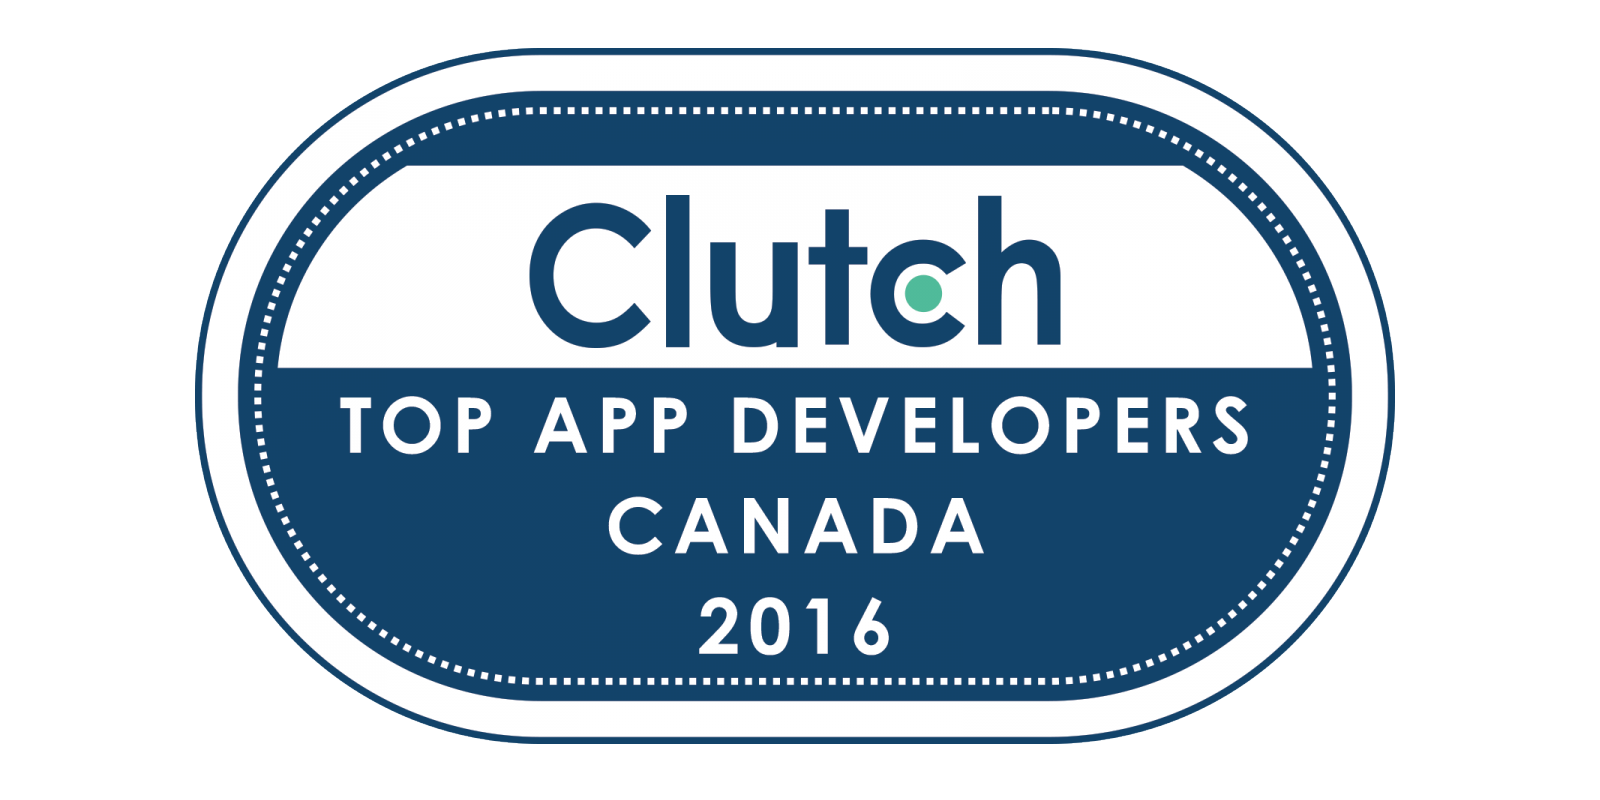 We Are One Of Canada's Top Mobile App Developers!